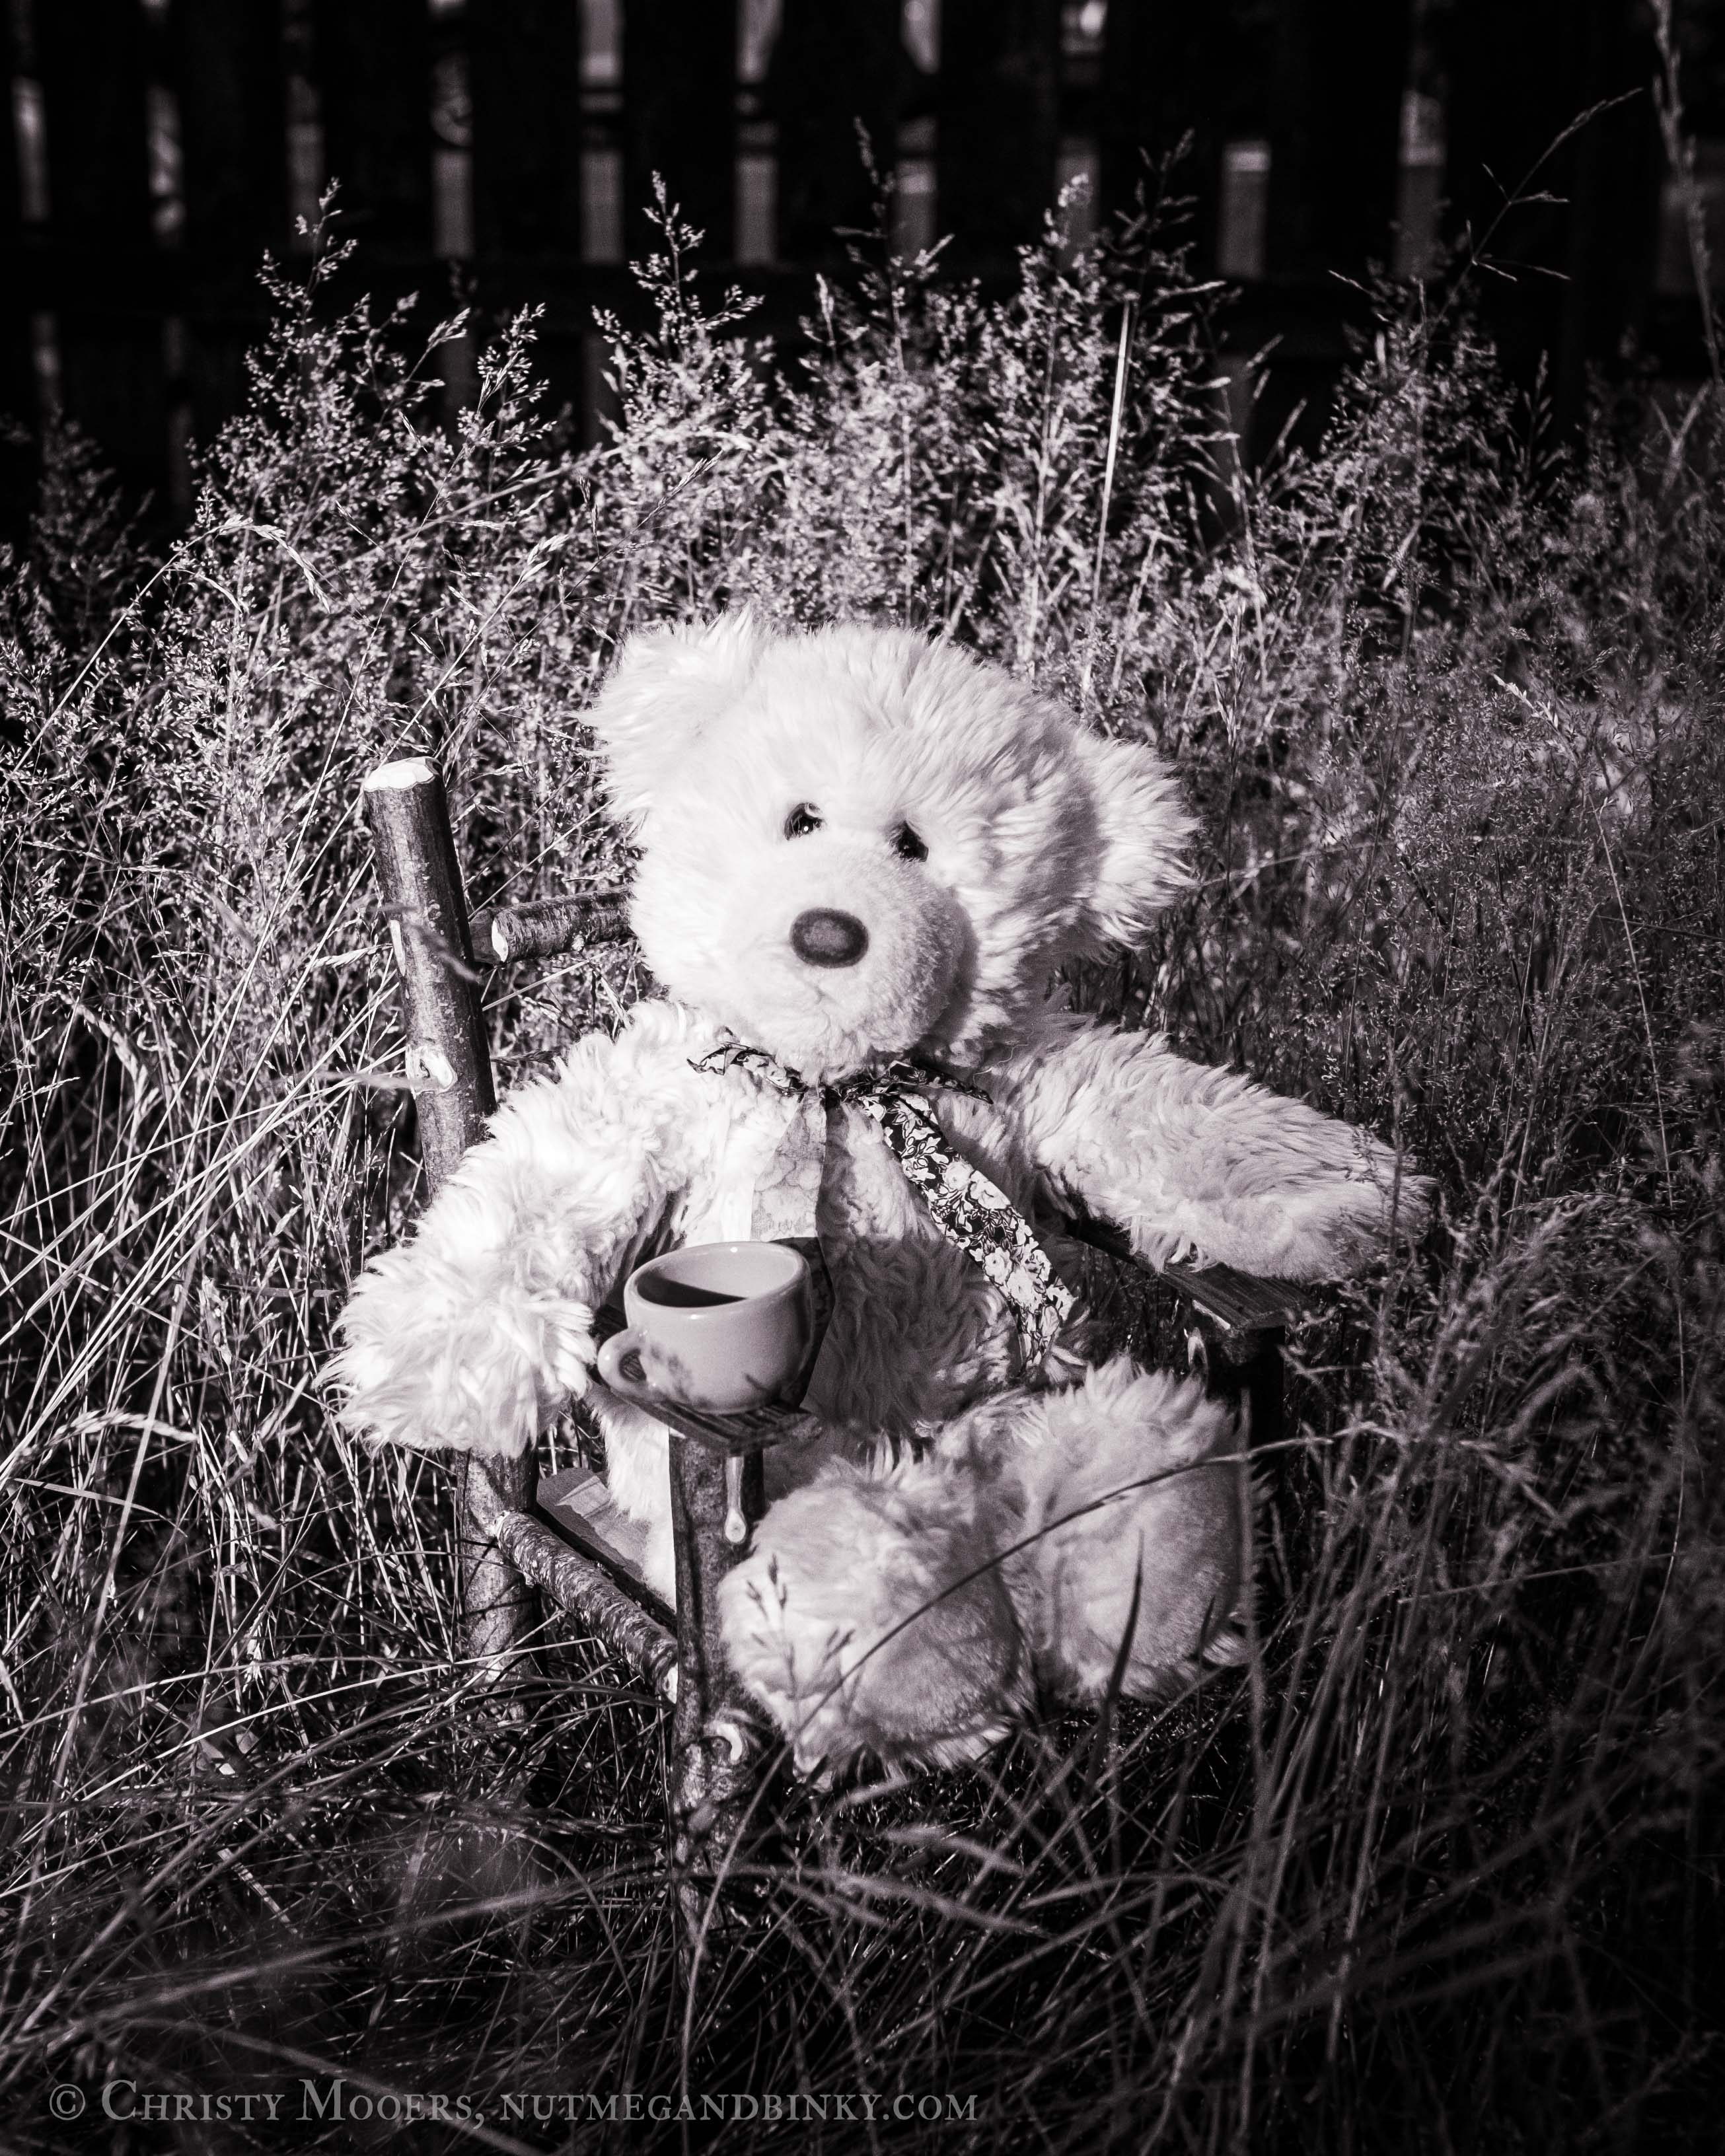 black and white photograph of white teddy bear having tea in a field